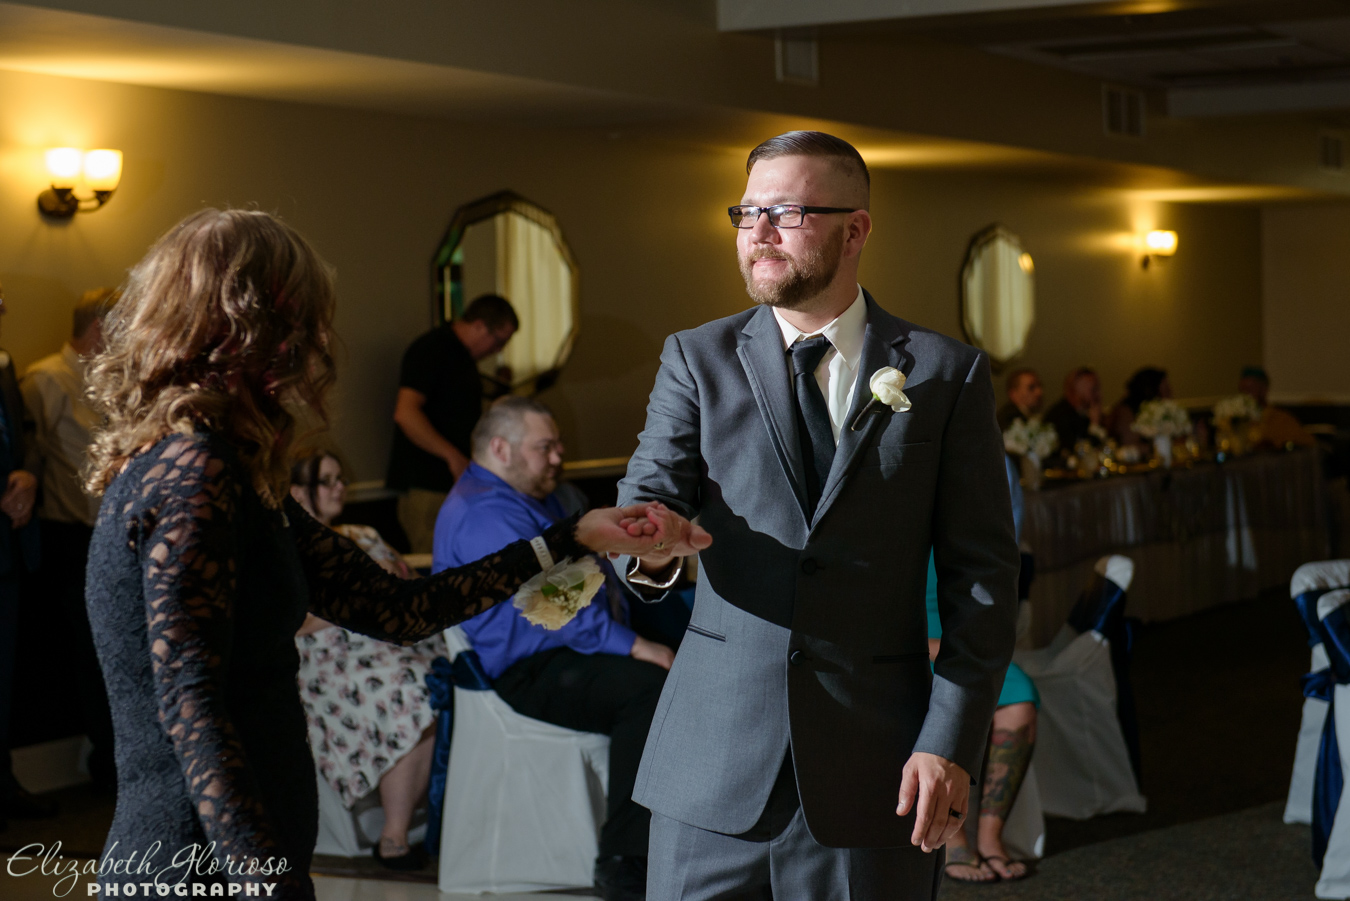 Zakovec_Wedding_Glorioso_Photography_Cleveland-144